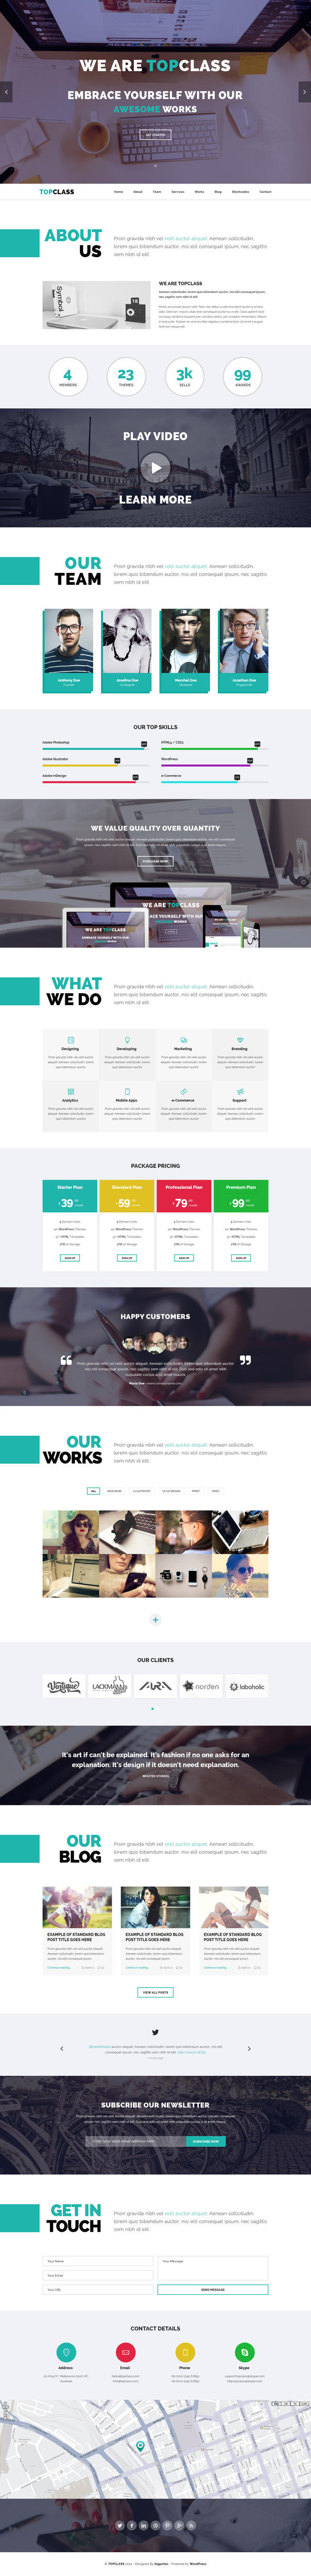 Premium WordPress Theme Setup and Customization (Plugin and Security) by Jewel_Theme - 63932